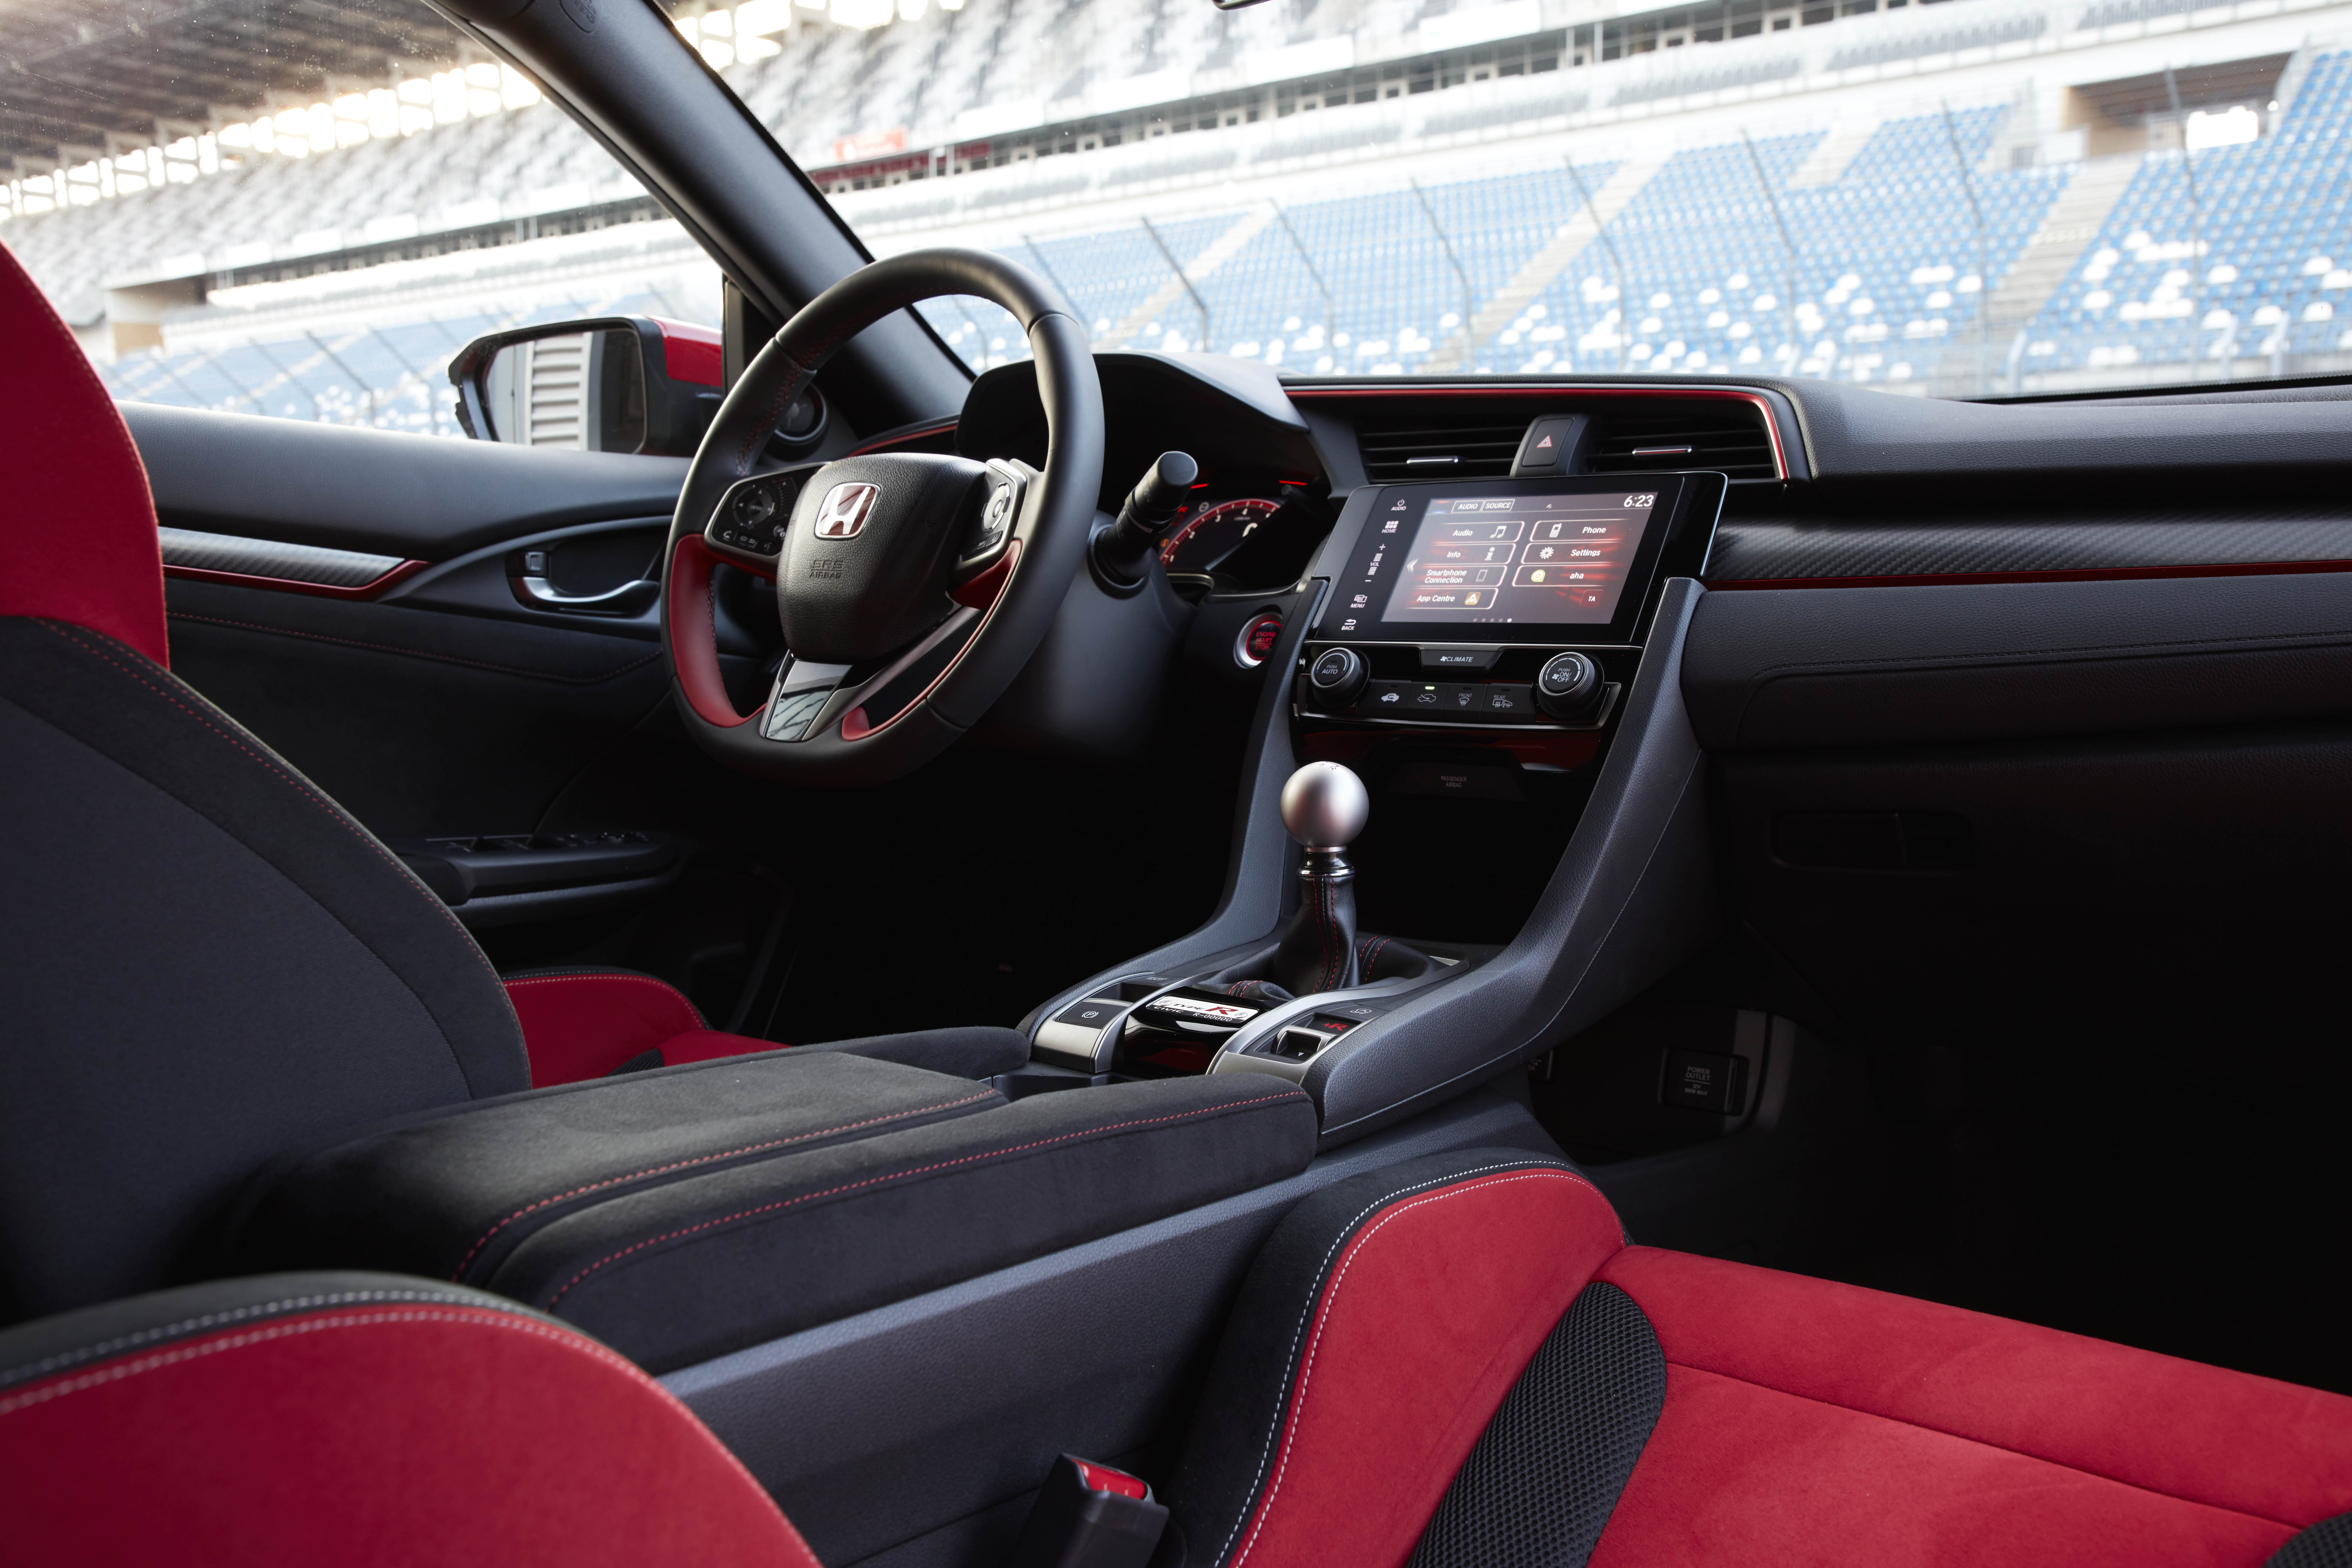 Honda Civic Type R interior specifications